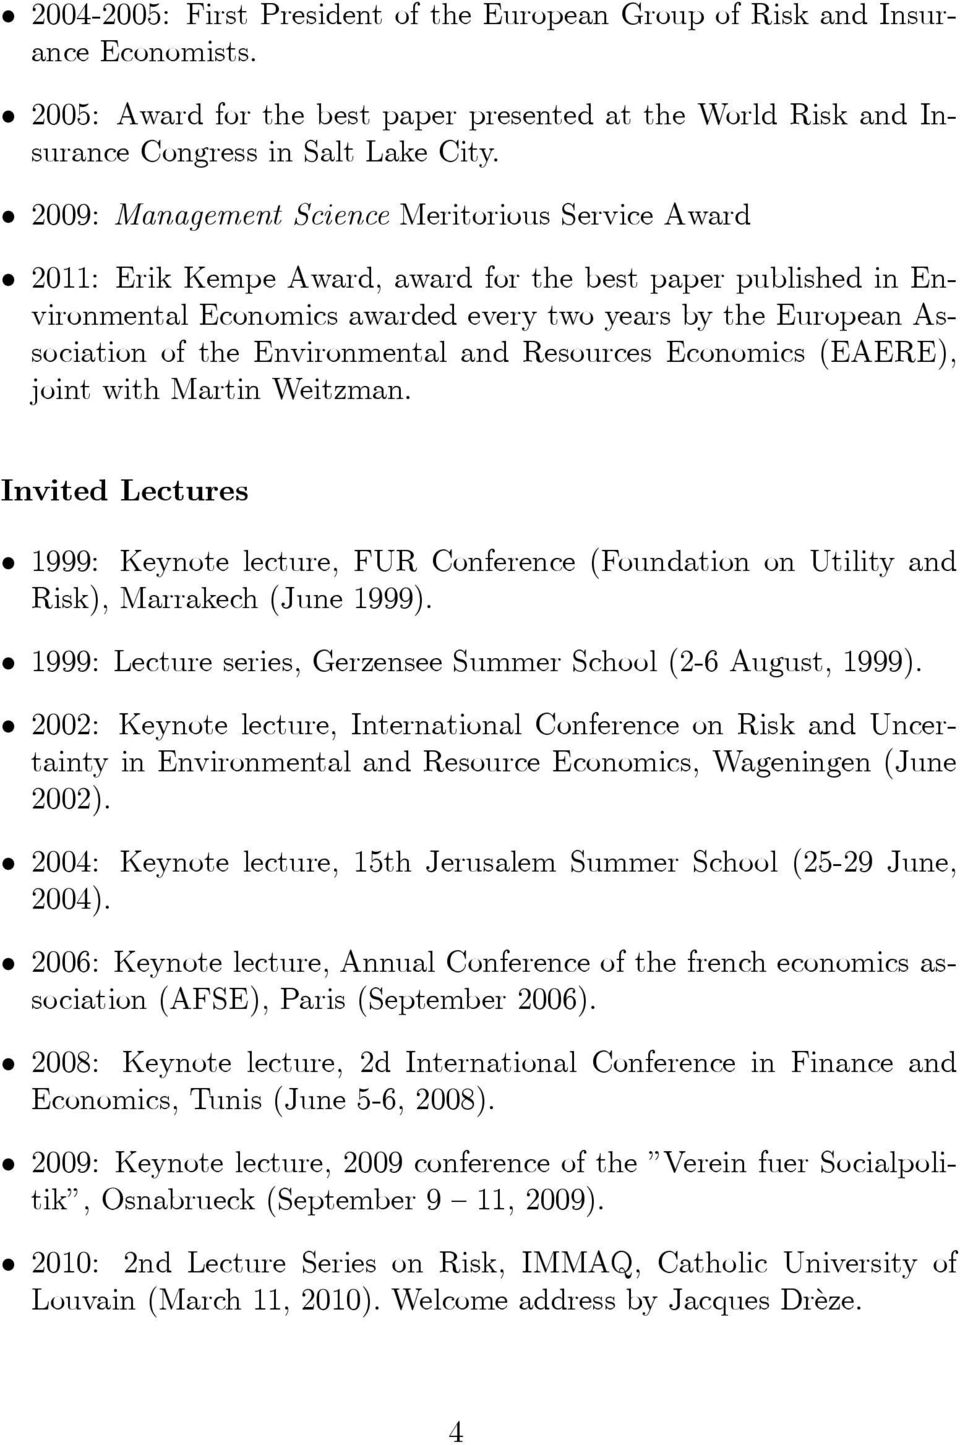 Environmental and Resources Economics (EAERE), joint with Martin Weitzman. Invited Lectures 1999: Keynote lecture, FUR Conference (Foundation on Utility and Risk), Marrakech (June 1999).